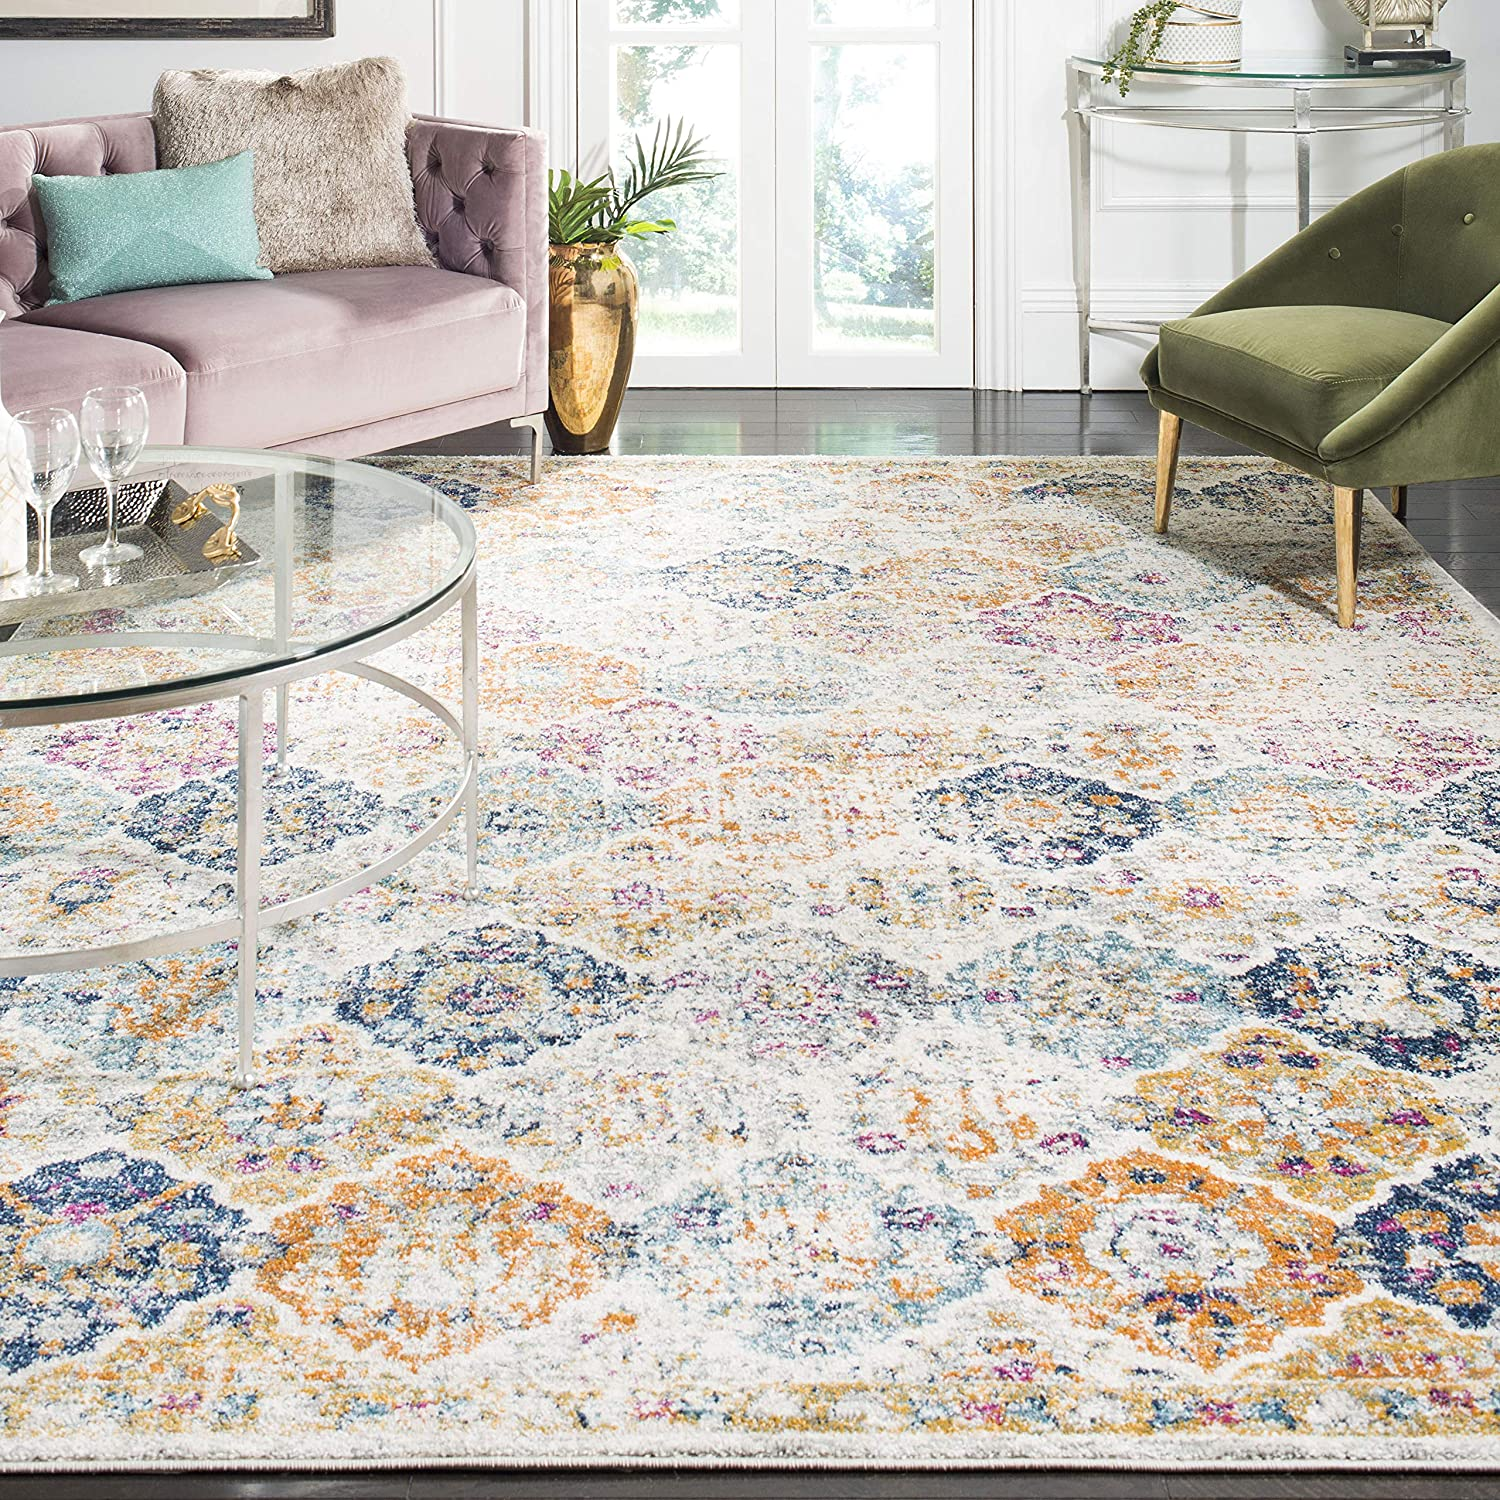 Multicolored Bohemian Chic Distressed Area Rug (8' x 10'